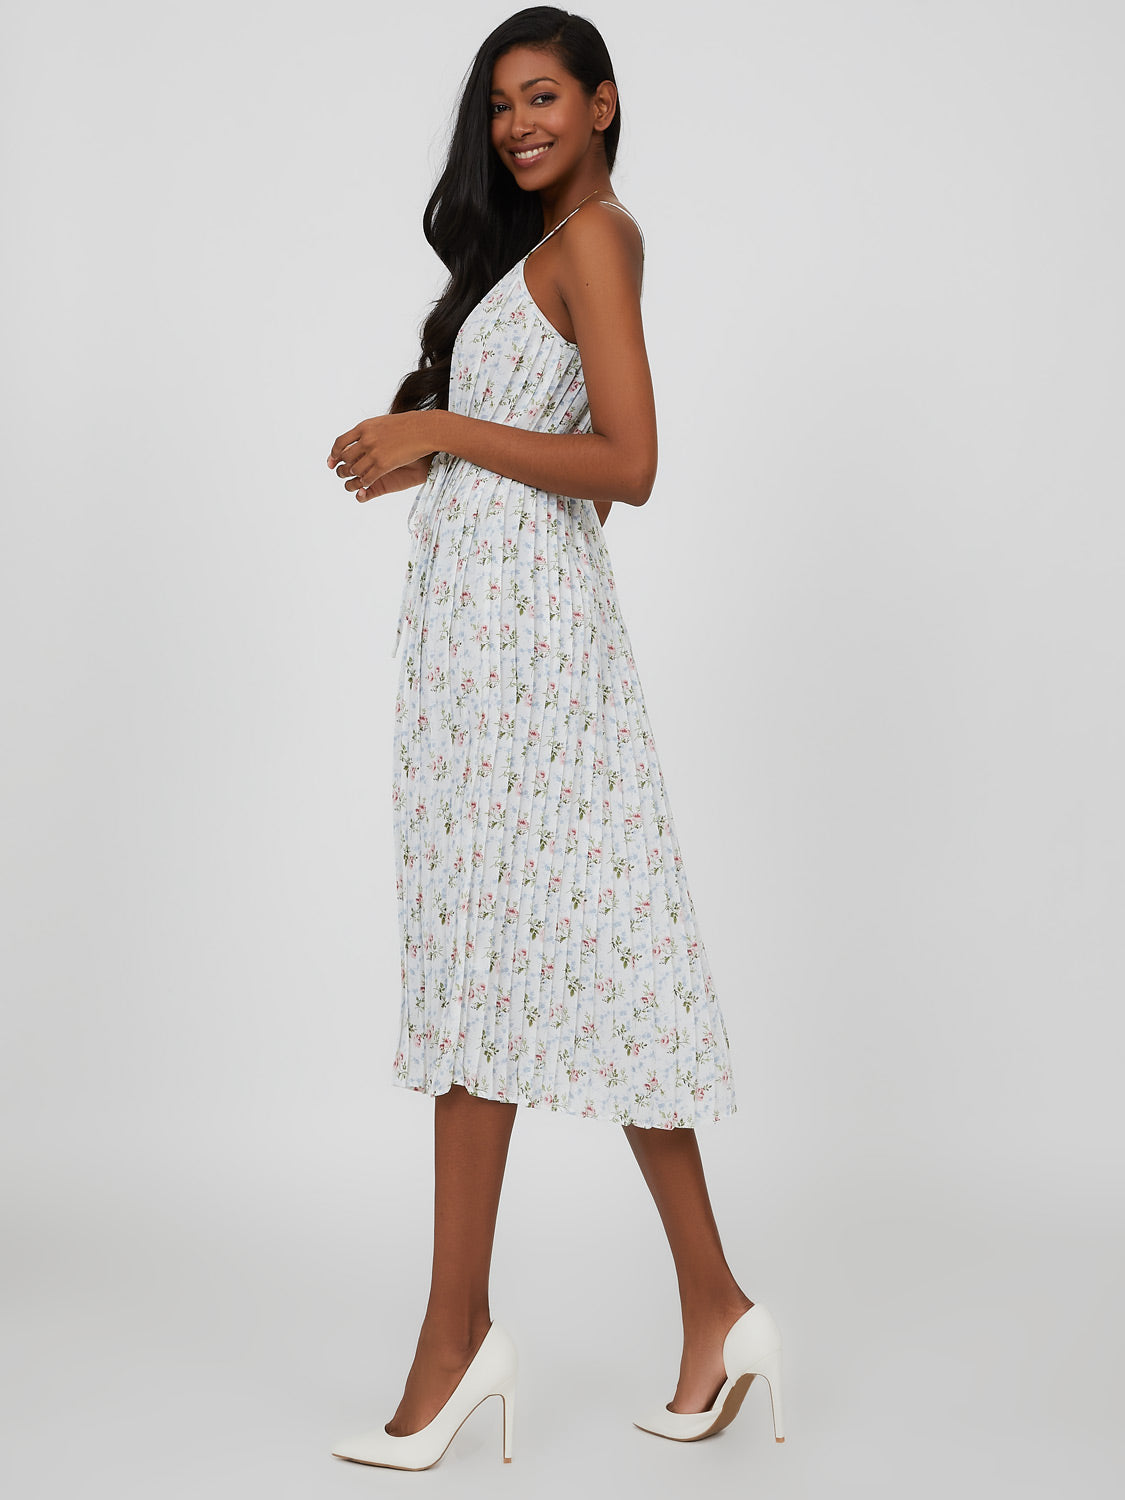 Spaghetti Strap Pleated Floral Chiffon Midi Dress